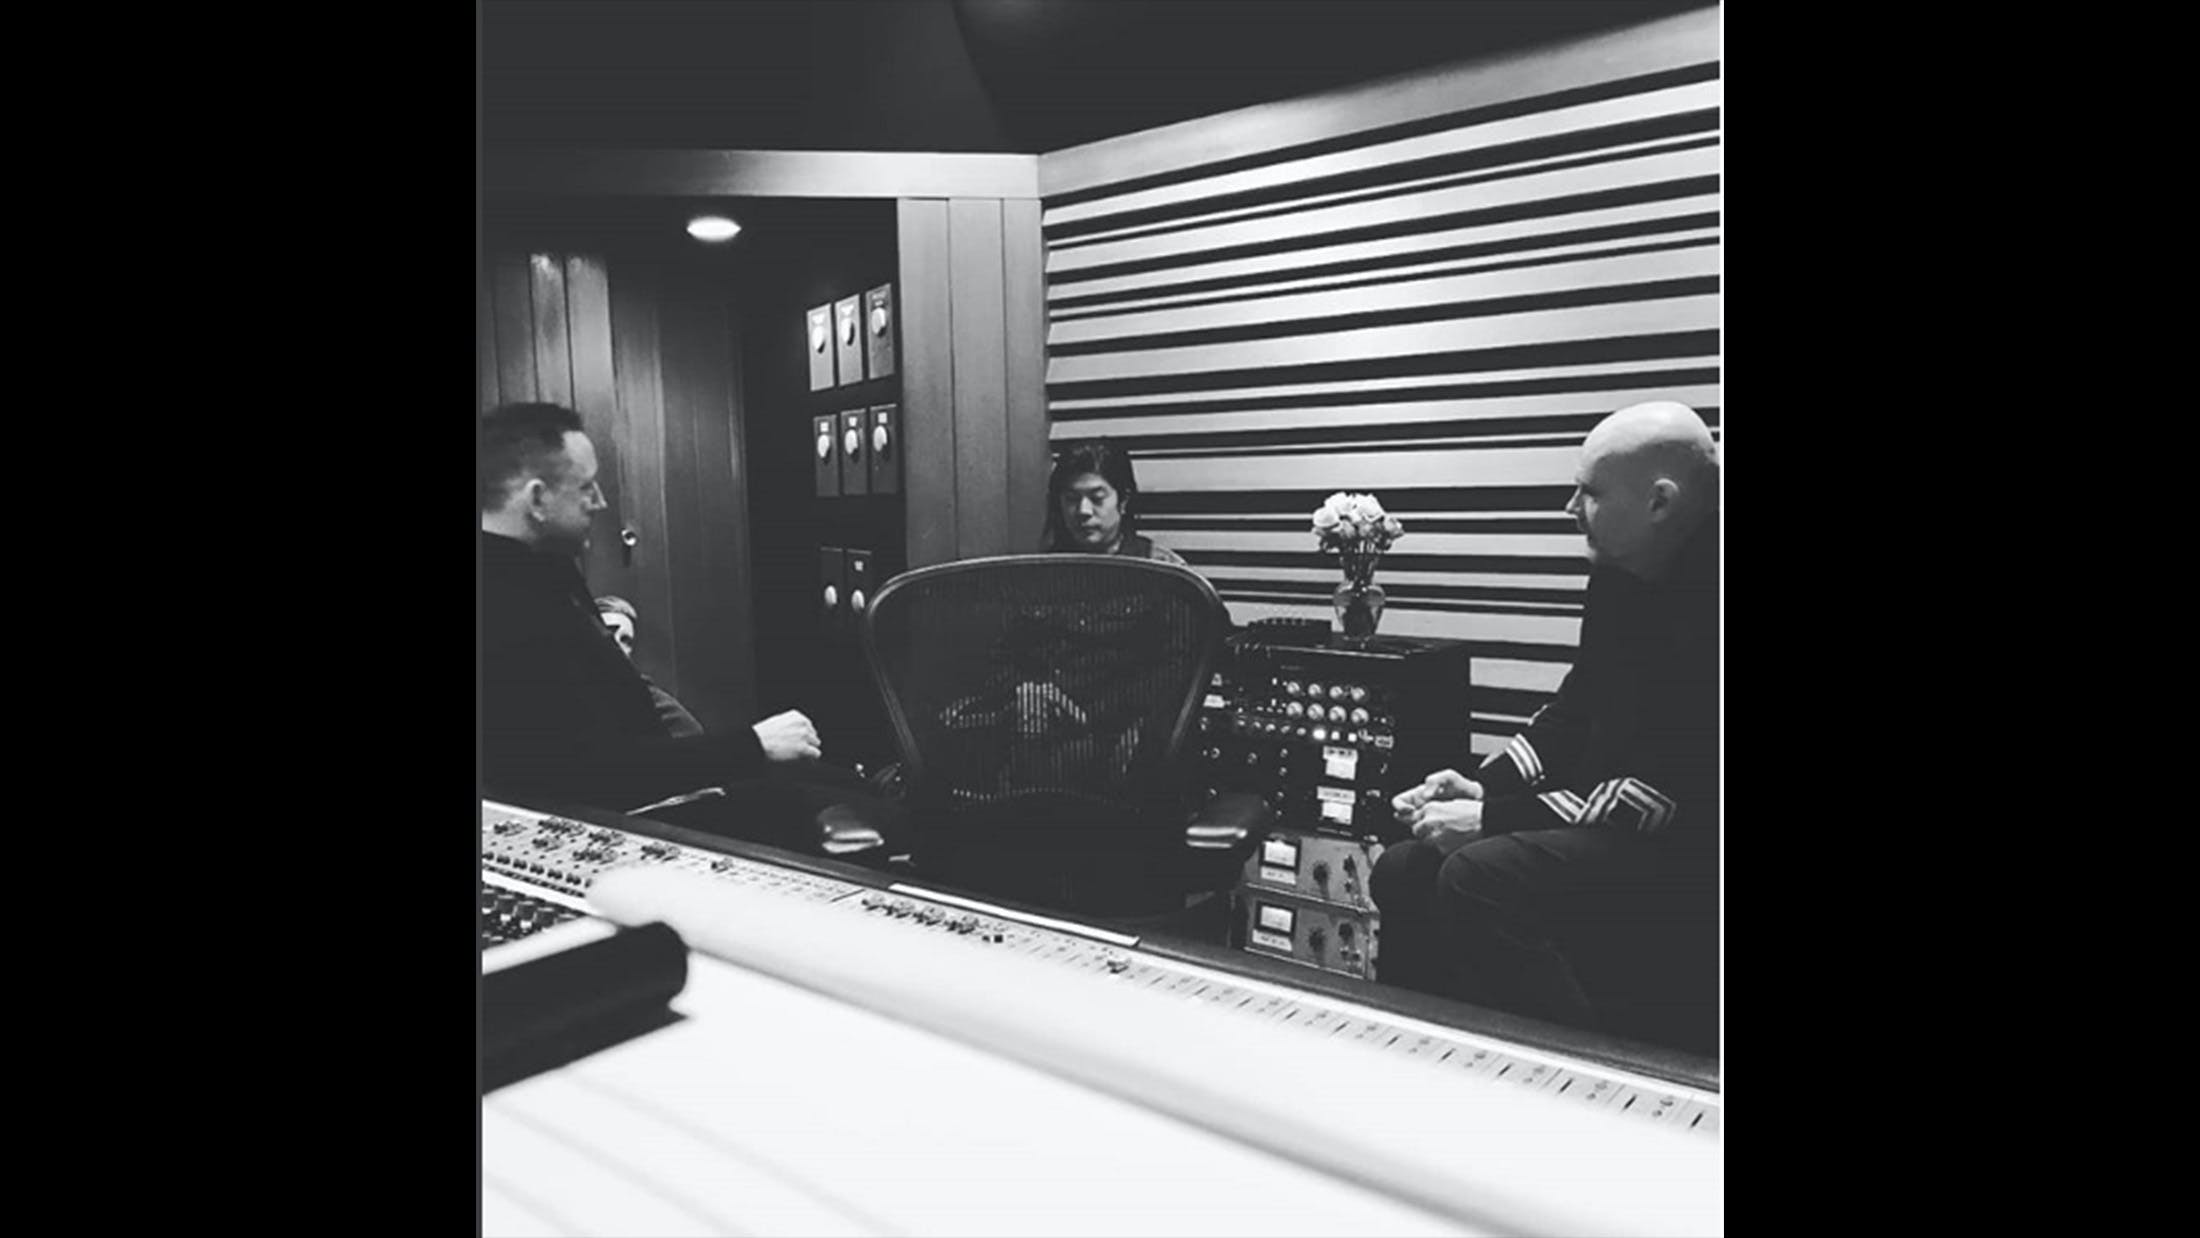 Original Smashing Pumpkins Members Pictured In The Studio Together